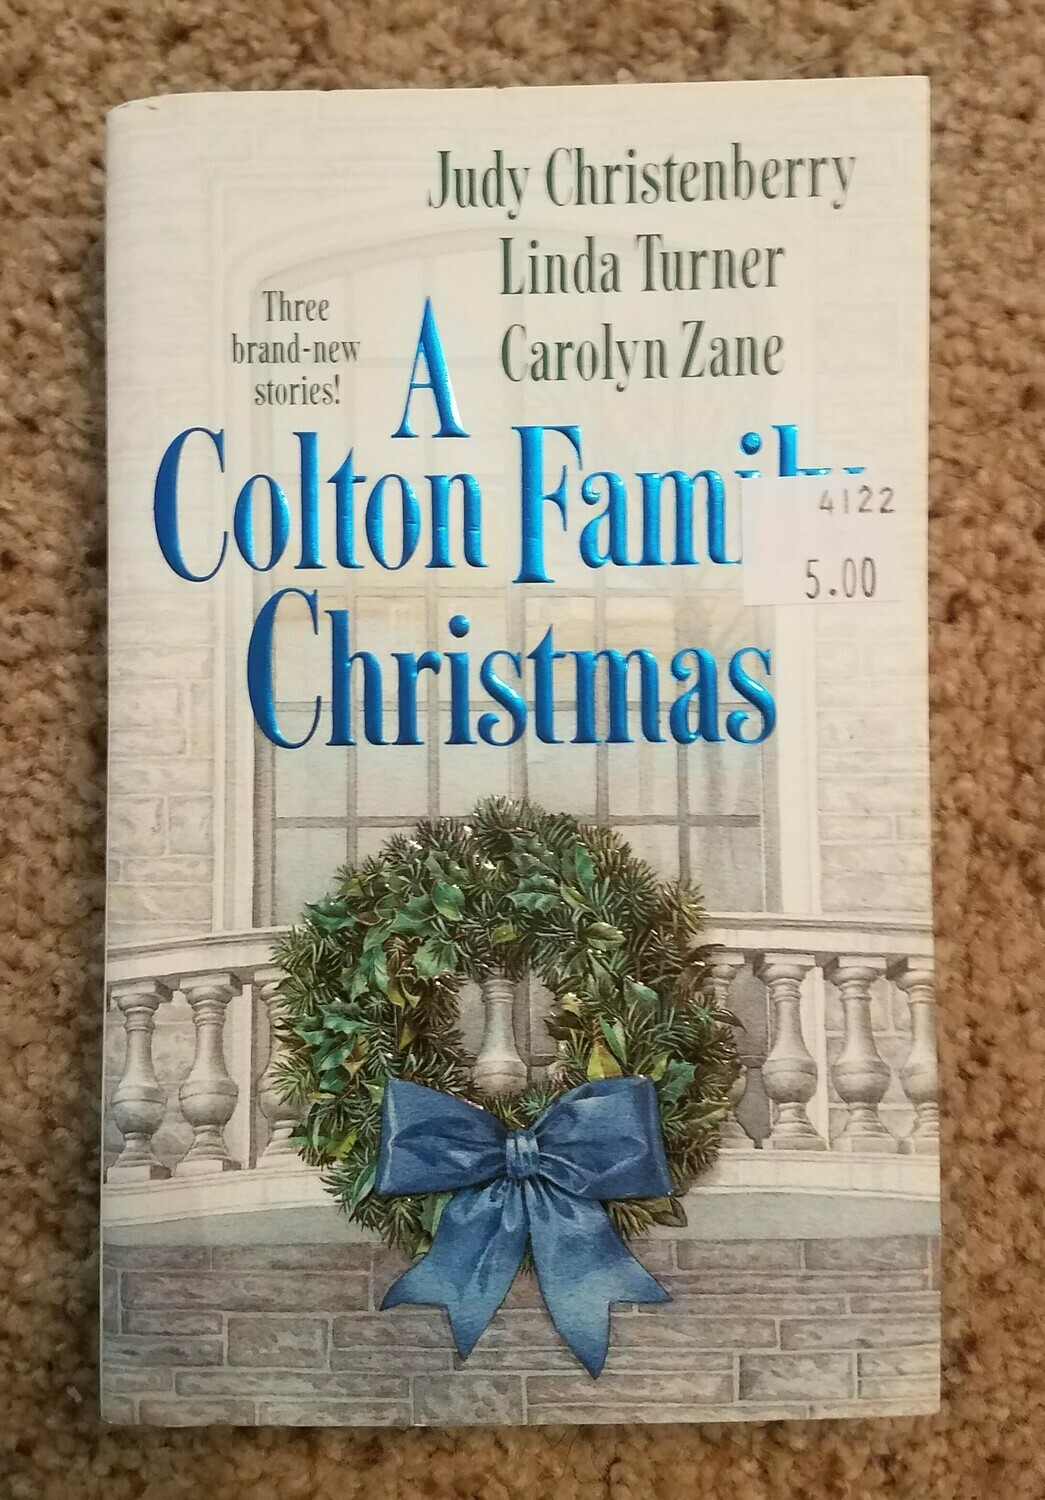 A Colton Family Christmas by Judy Christenberry, Linda Turner, and Carolyn Zane